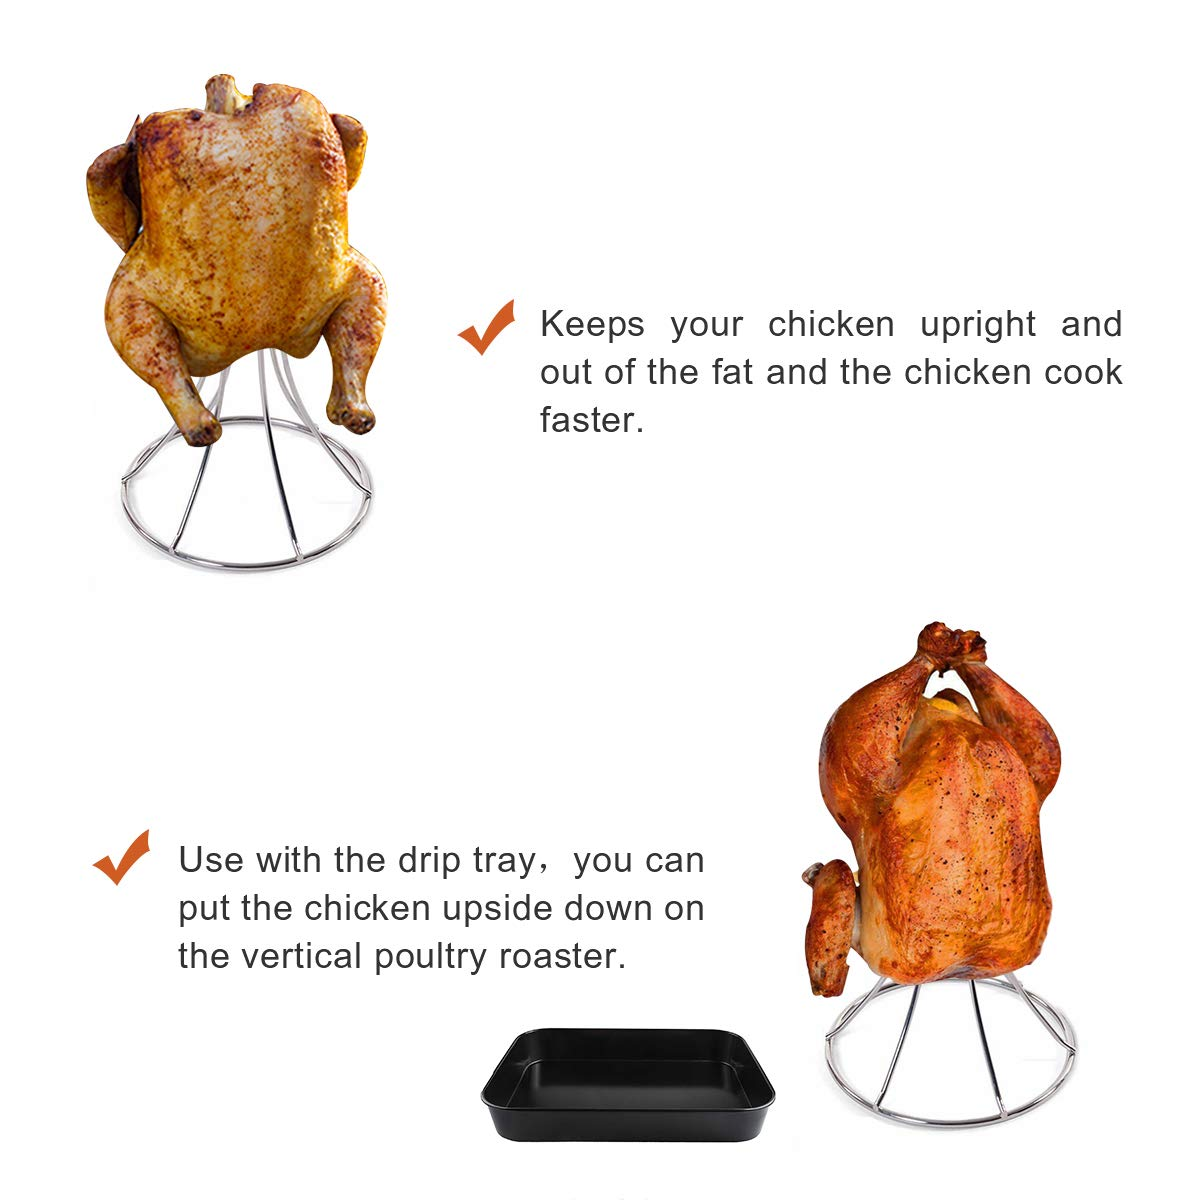 QQMaster Vertical Chicken Roaster Stainless Steel Turkey Rack Roaster Beer Can Meat Rack Holder Non-Stick Poultry Grill Stand Can Hold Turkey Or Cornish Game Hens Fit for Big Green Egg,Kamado Grills by QQMaster (Image #3)